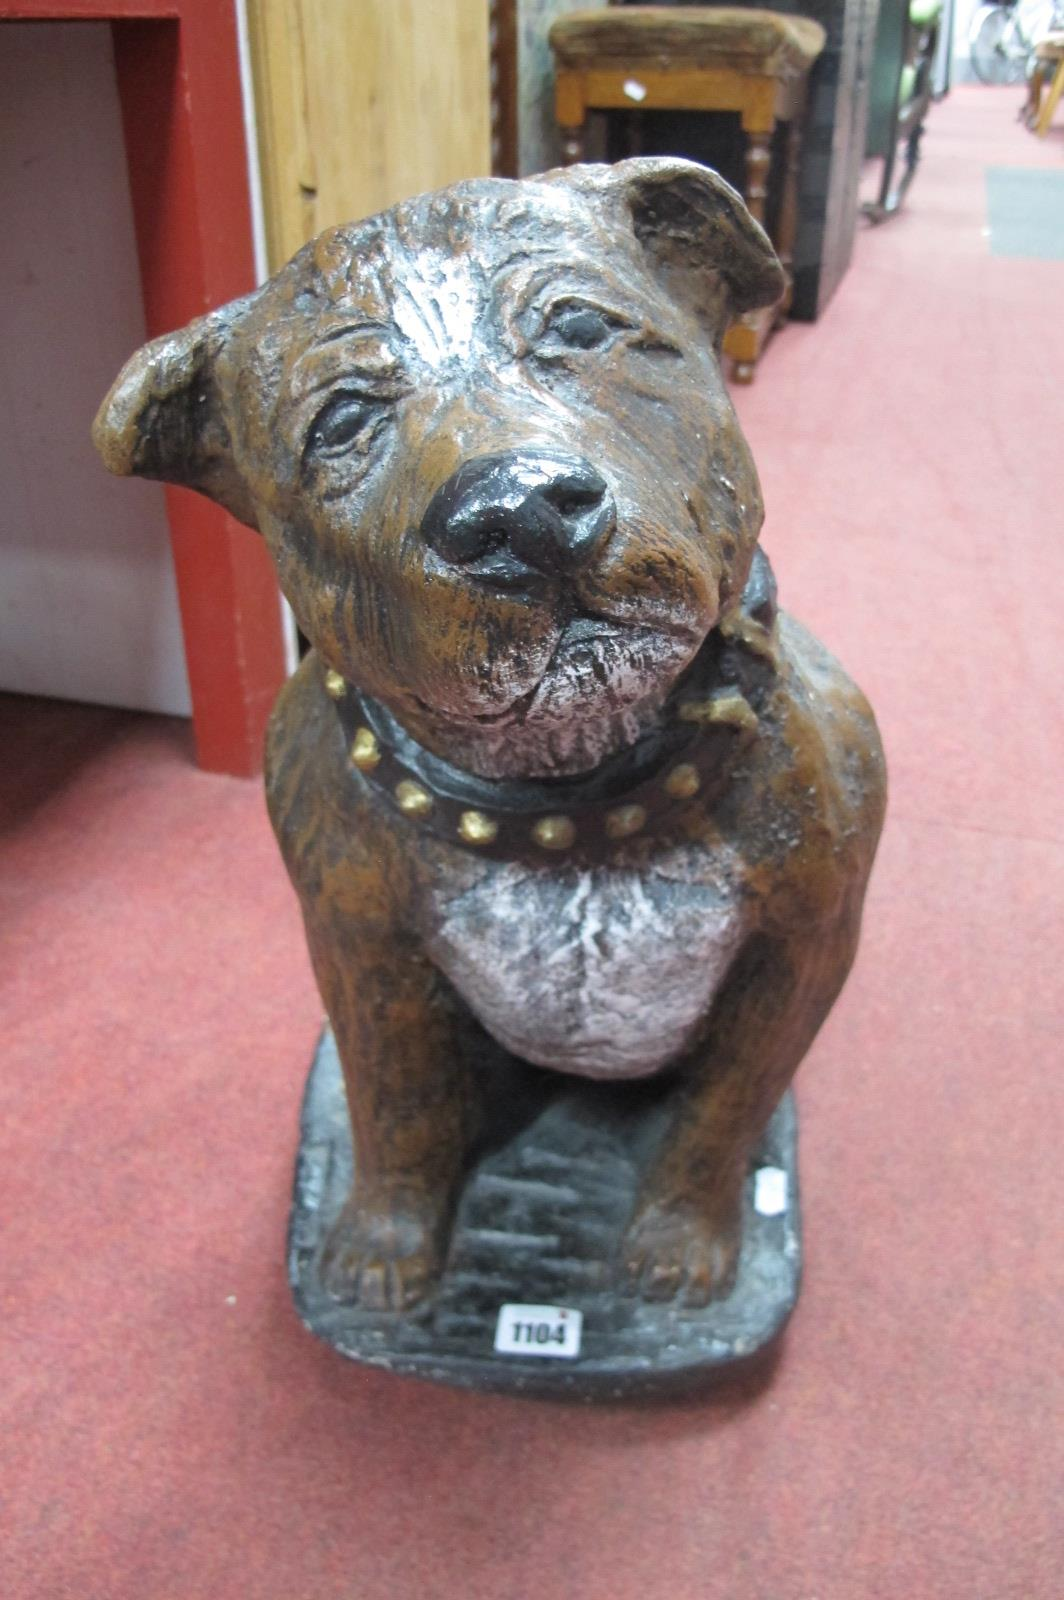 A Painted Concrete Door Stop, as a Staffordshire dog, 4.6cm high.